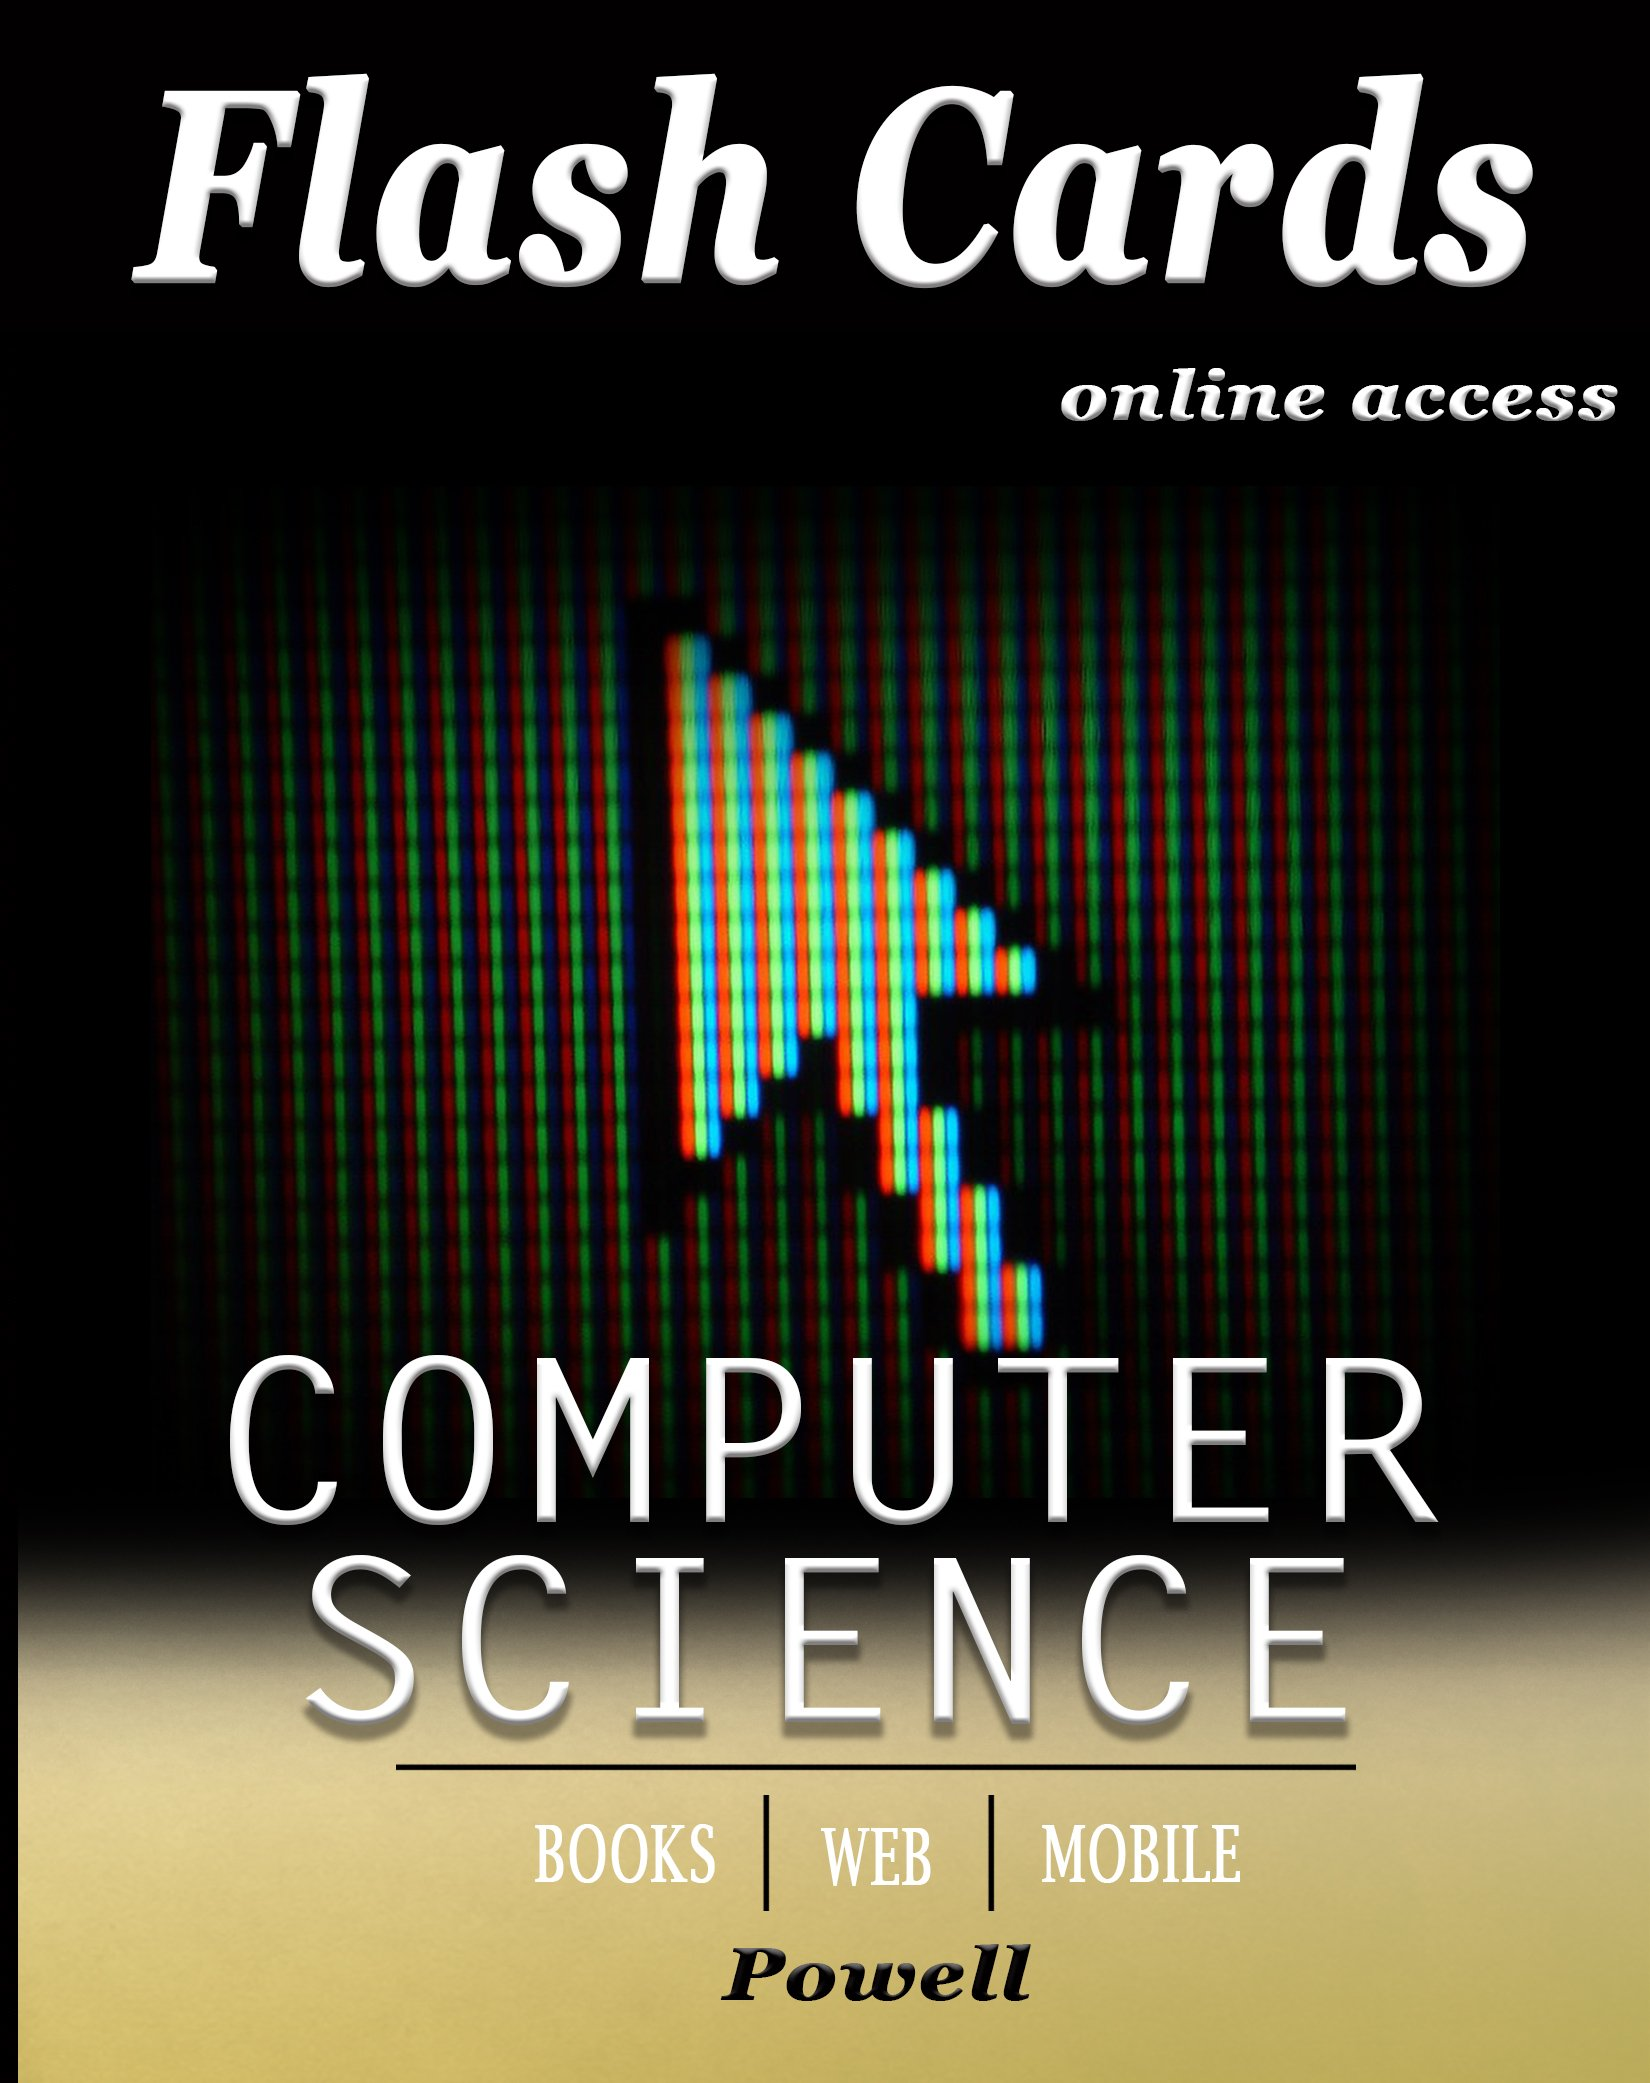 Download Access Card for Online Flash Cards, Information theory PDF